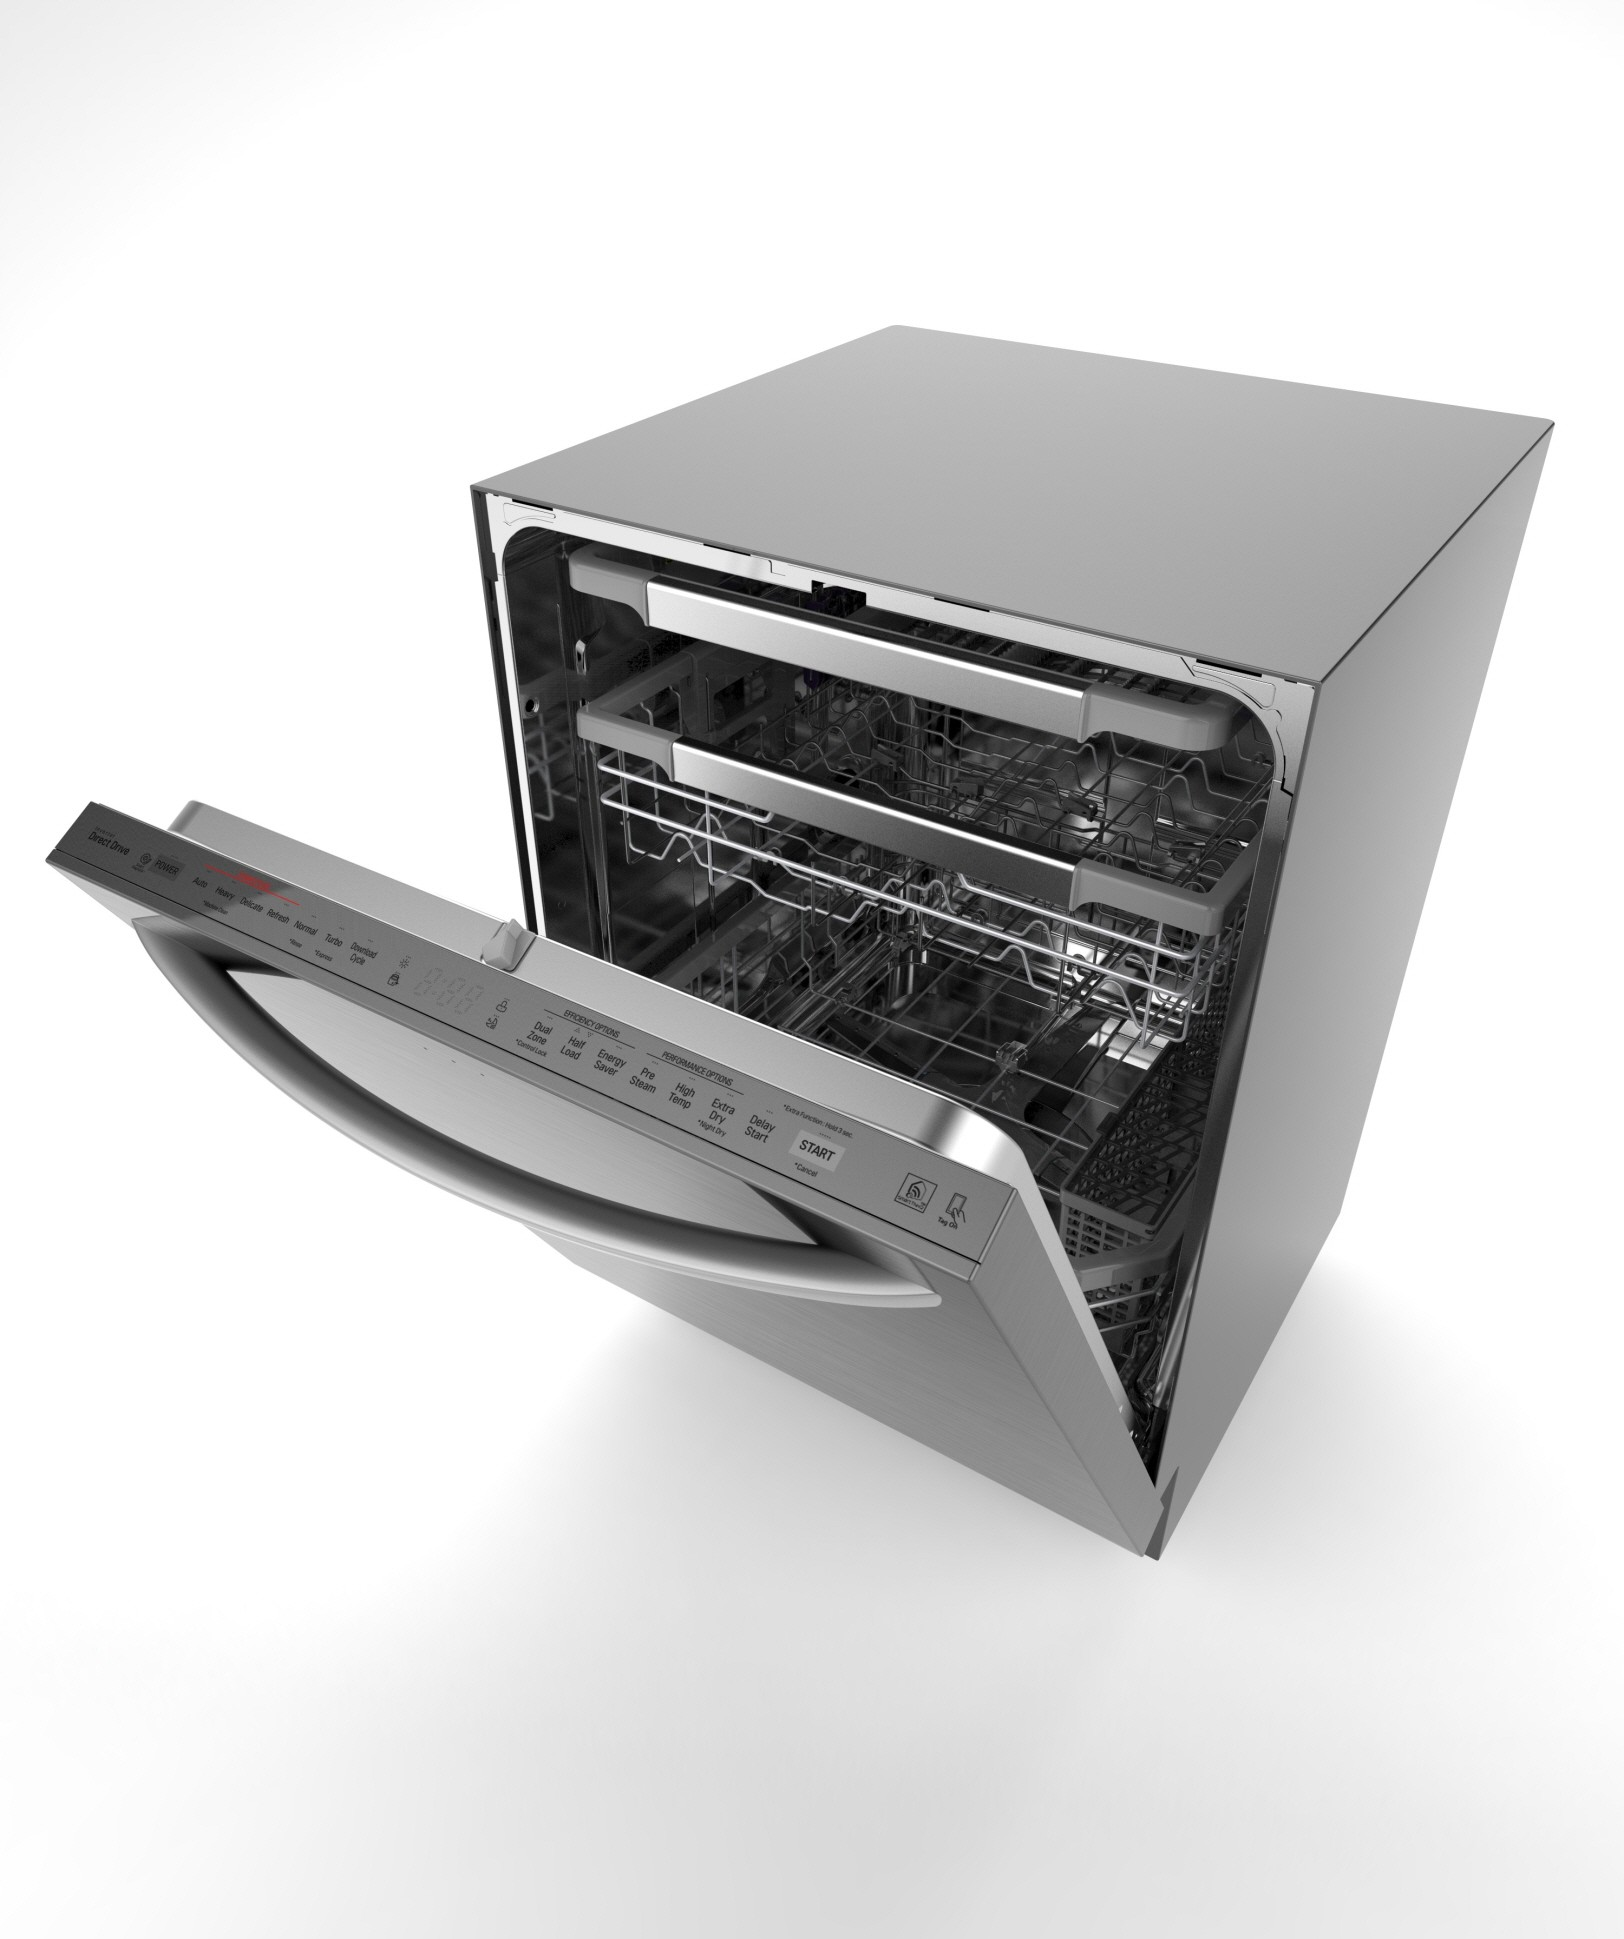 Lg To Unveil New Dishwasher Loaded With Latest Features At